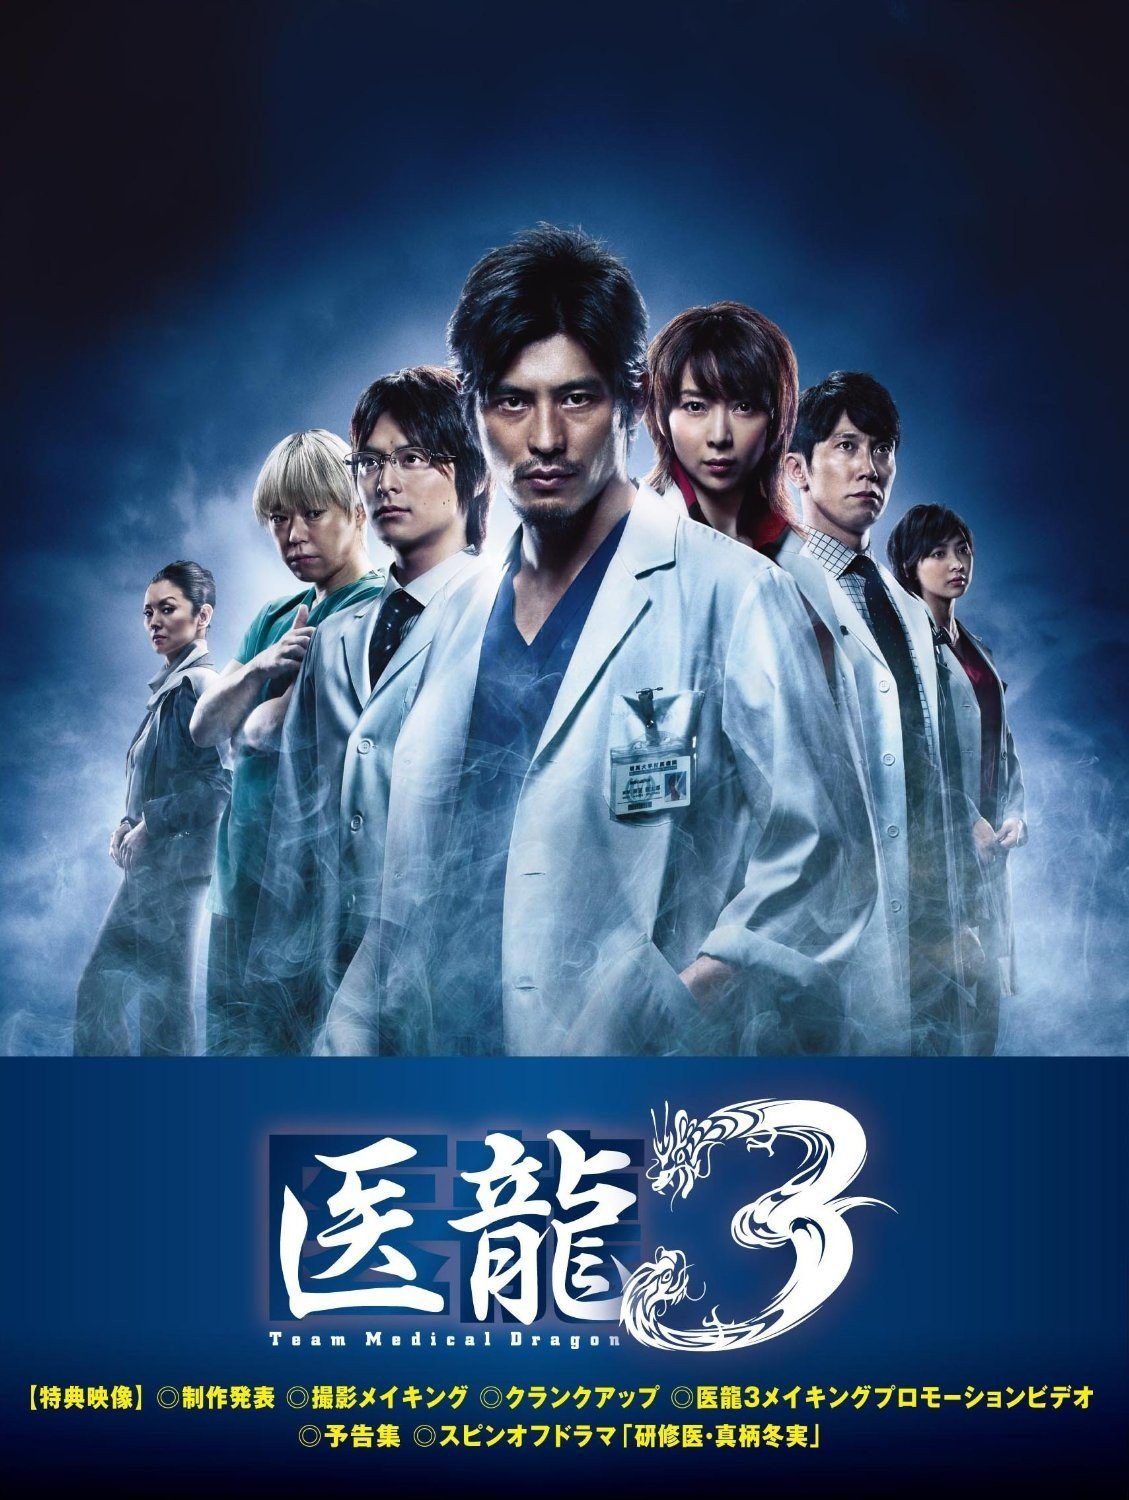 医龍 -Team Medical Dragon- 3 医龙 -Team Medical Dragon- 3